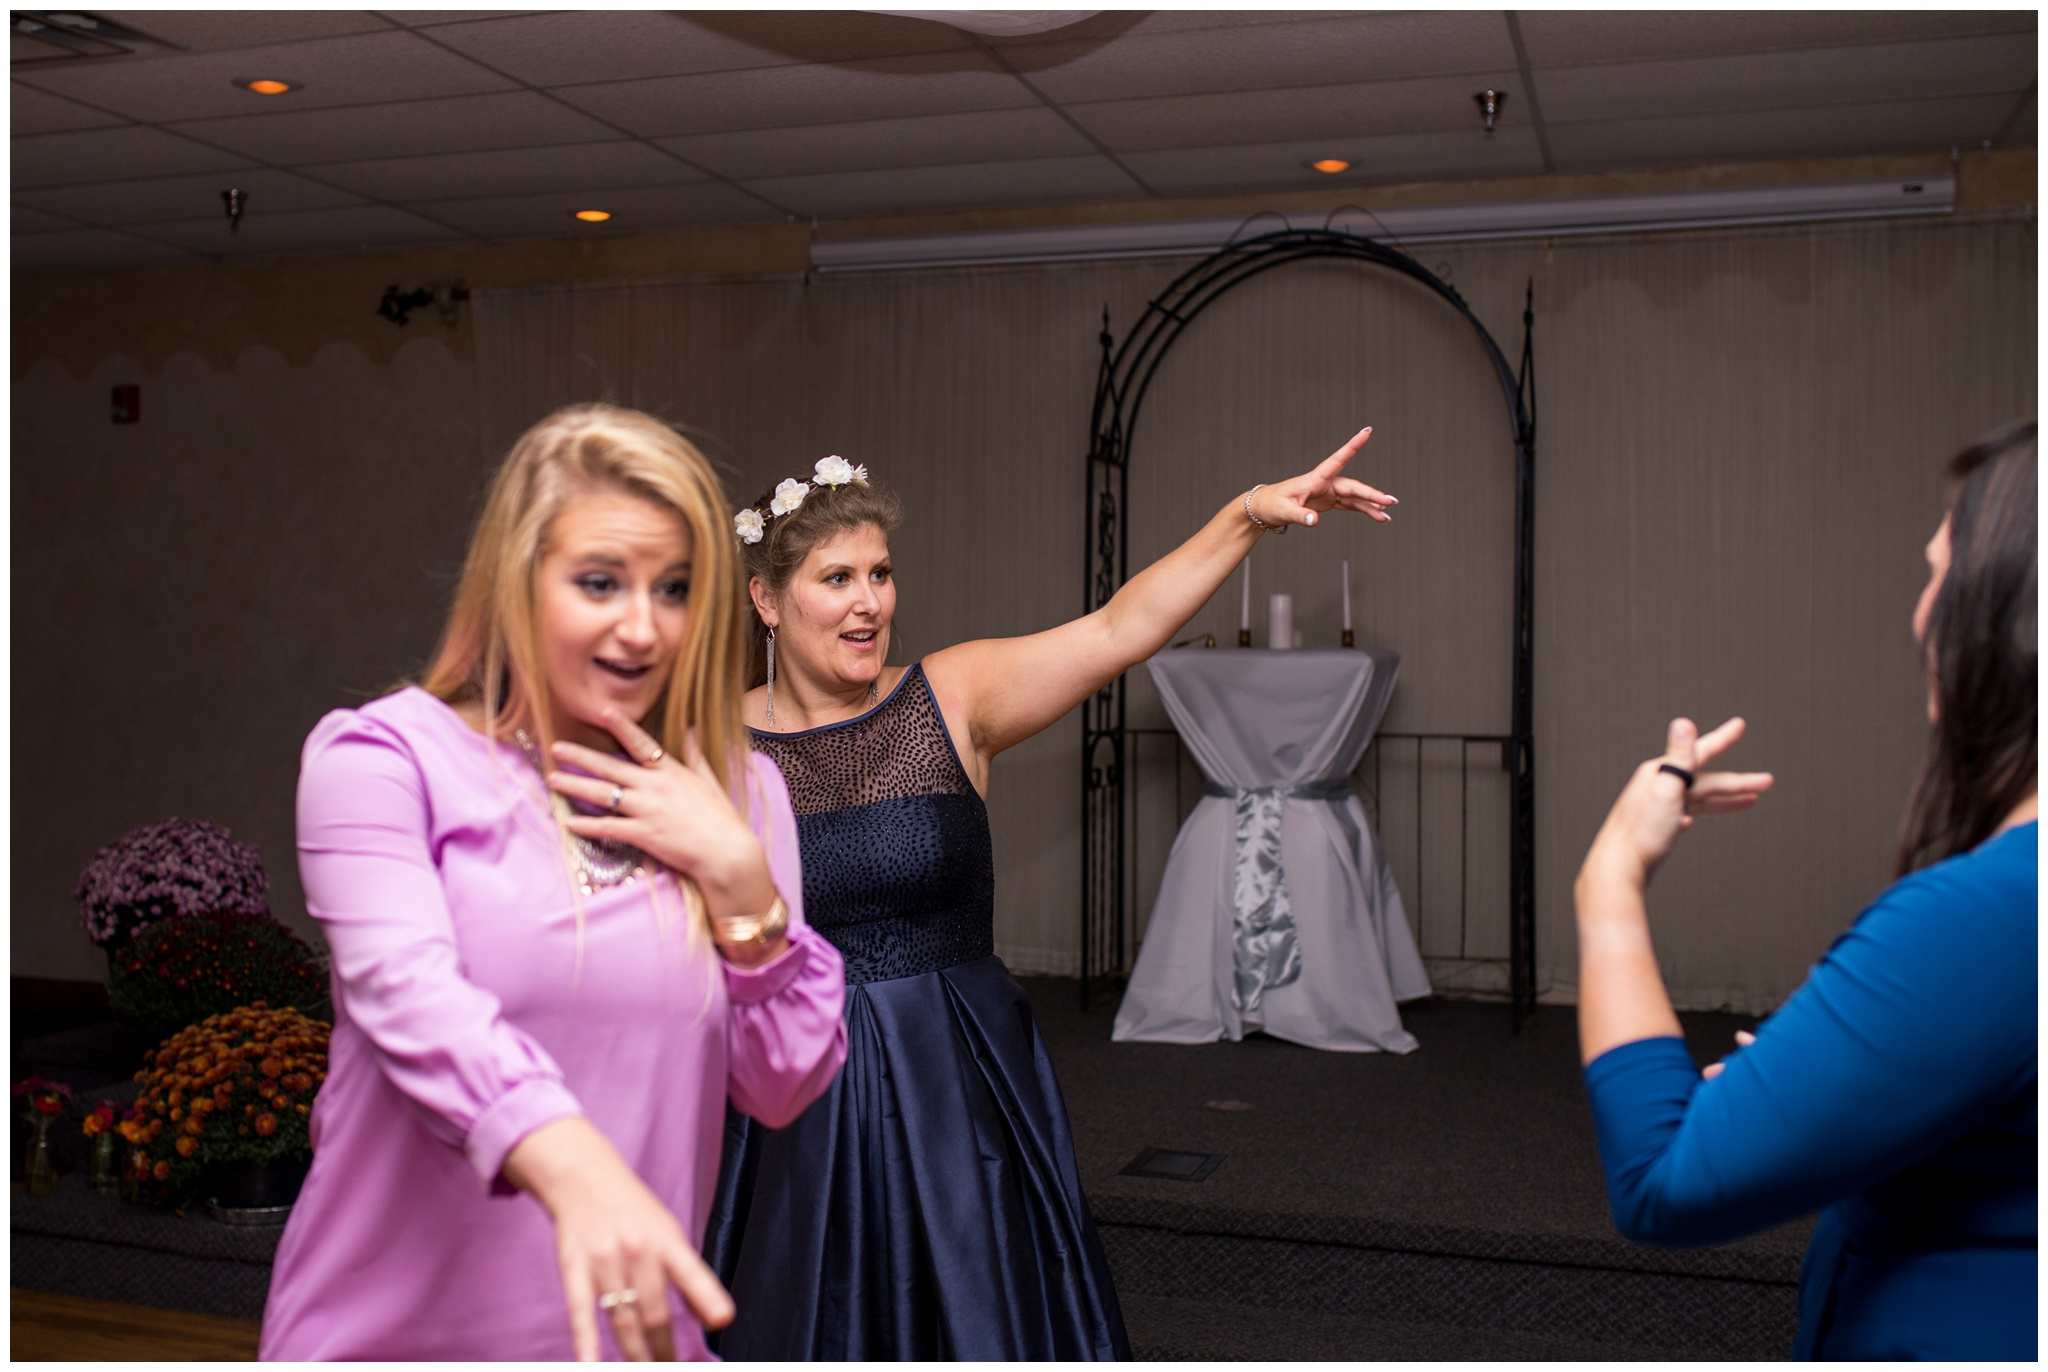 bride dancing during wedding reception at Romer's Catering in Greenville Ohio